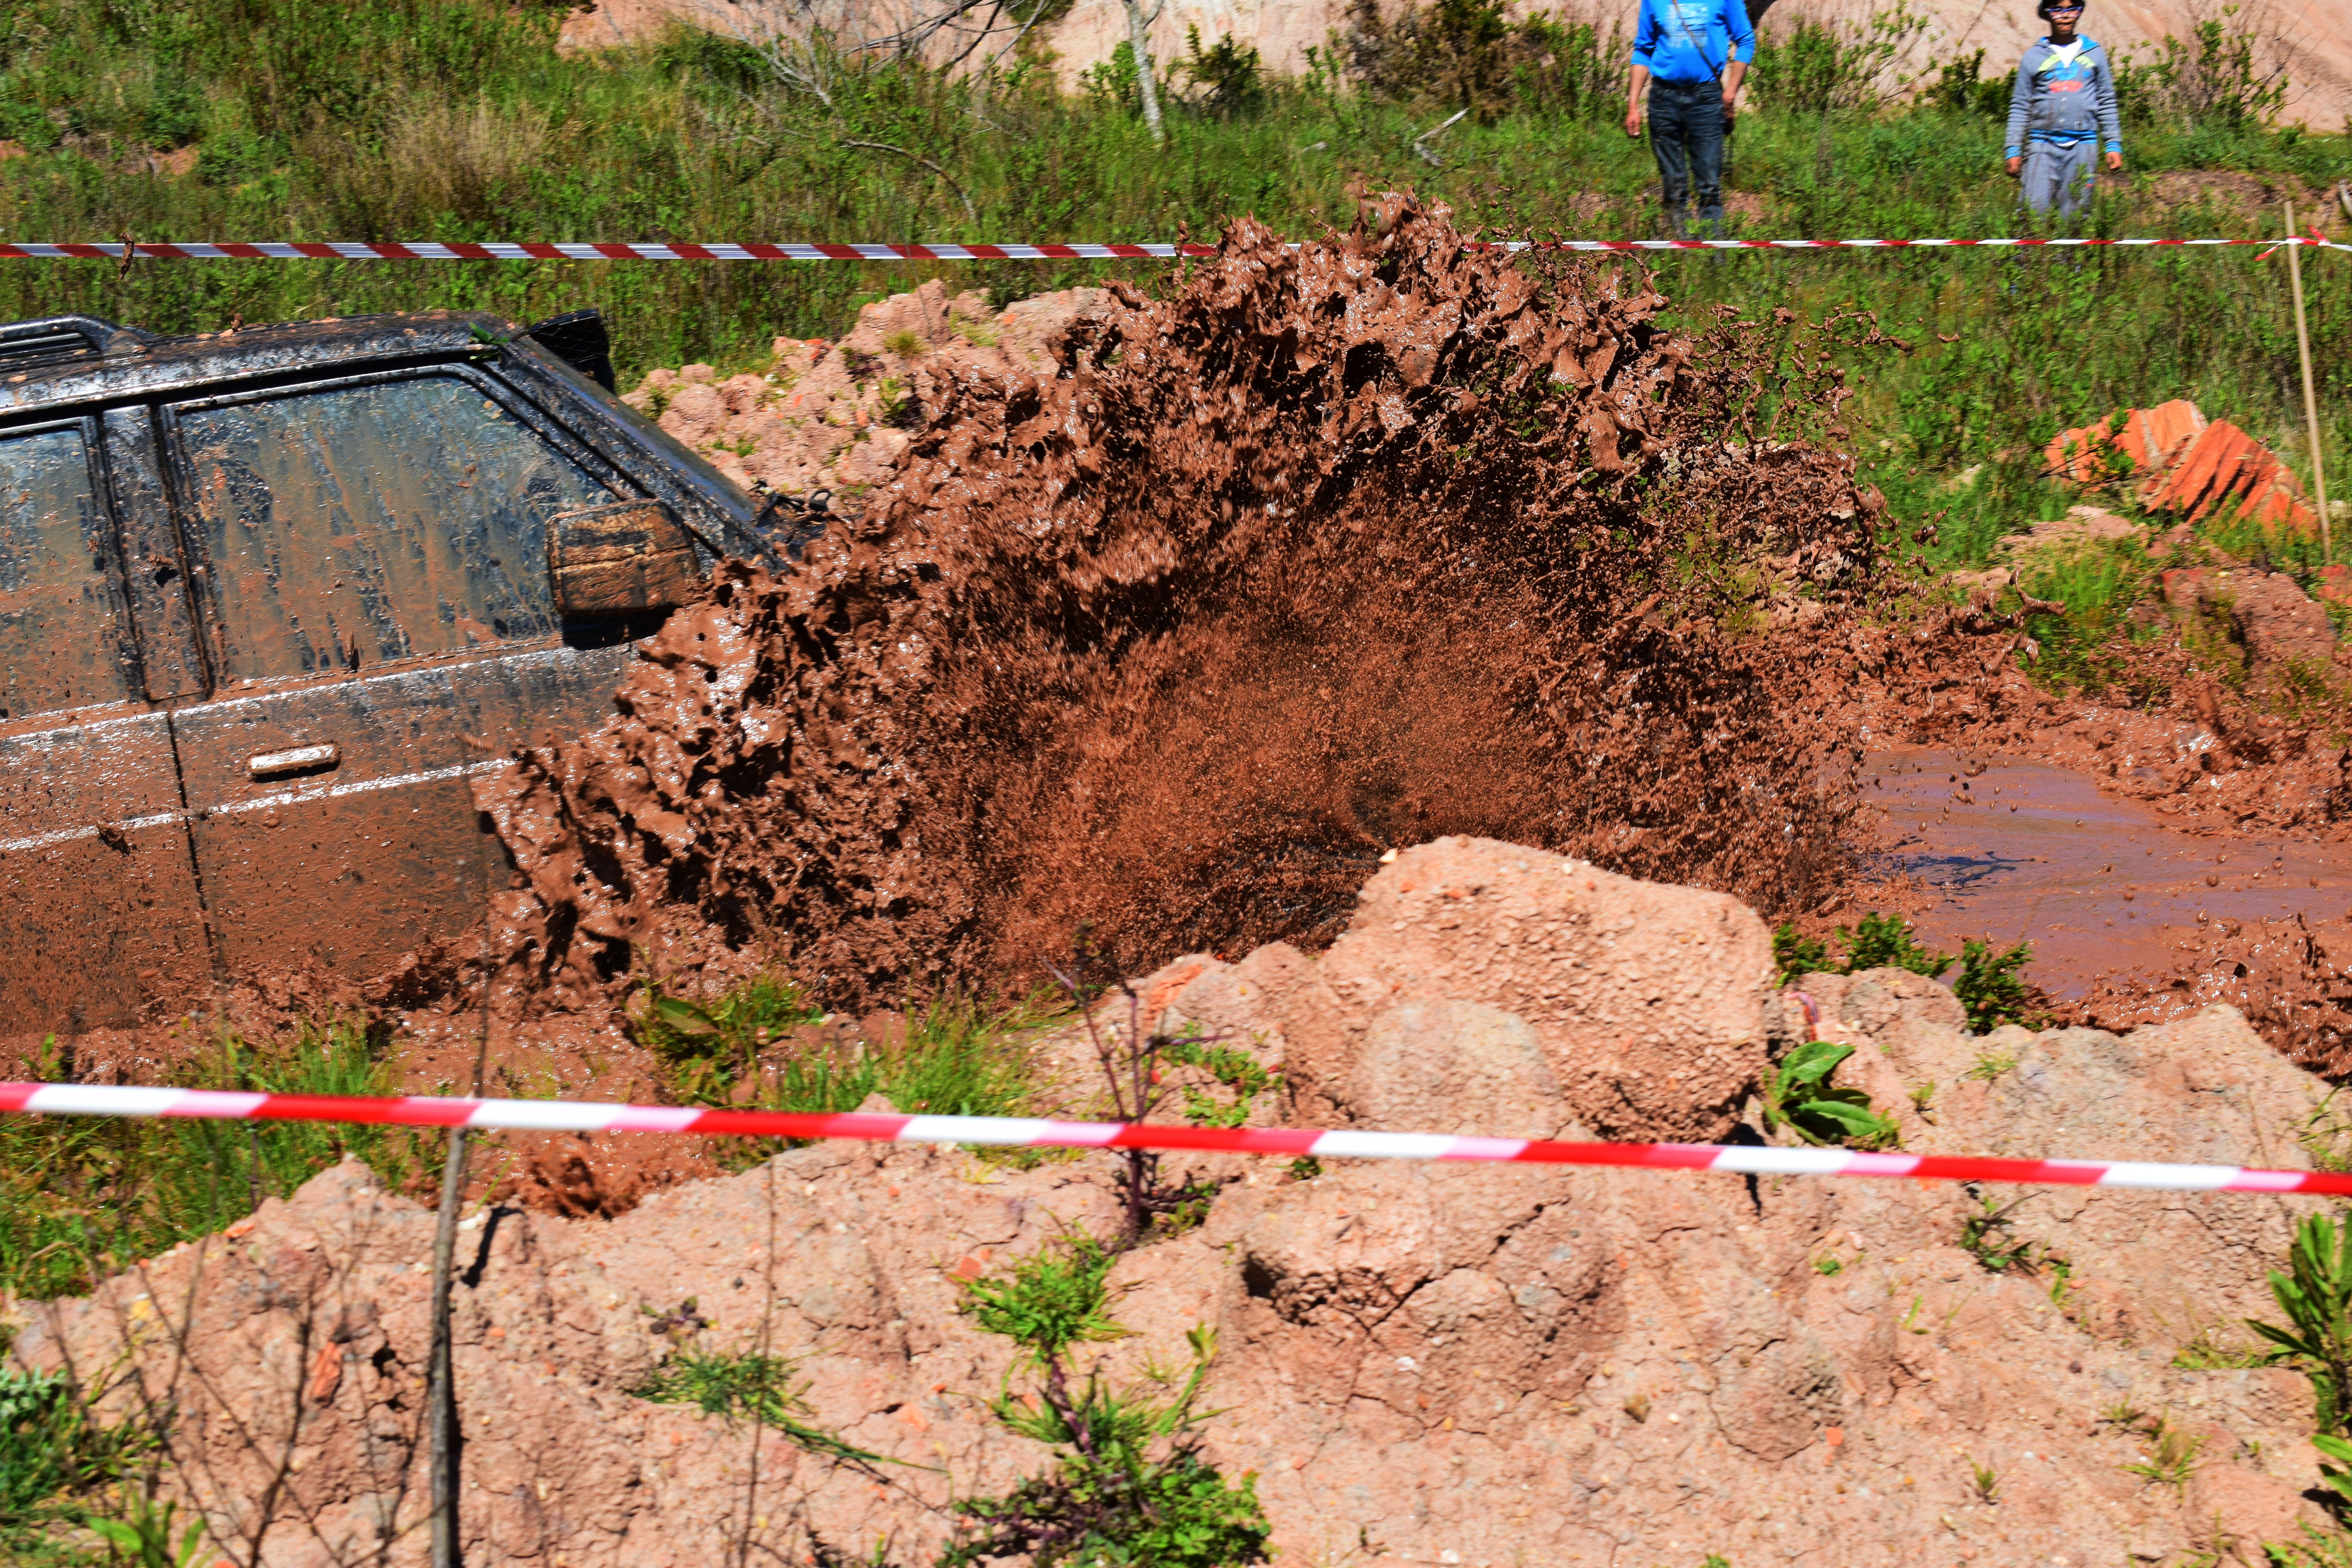 Nissan Patrol Off Road Driving, Contest, Dirt, Driving, Mud, HQ Photo